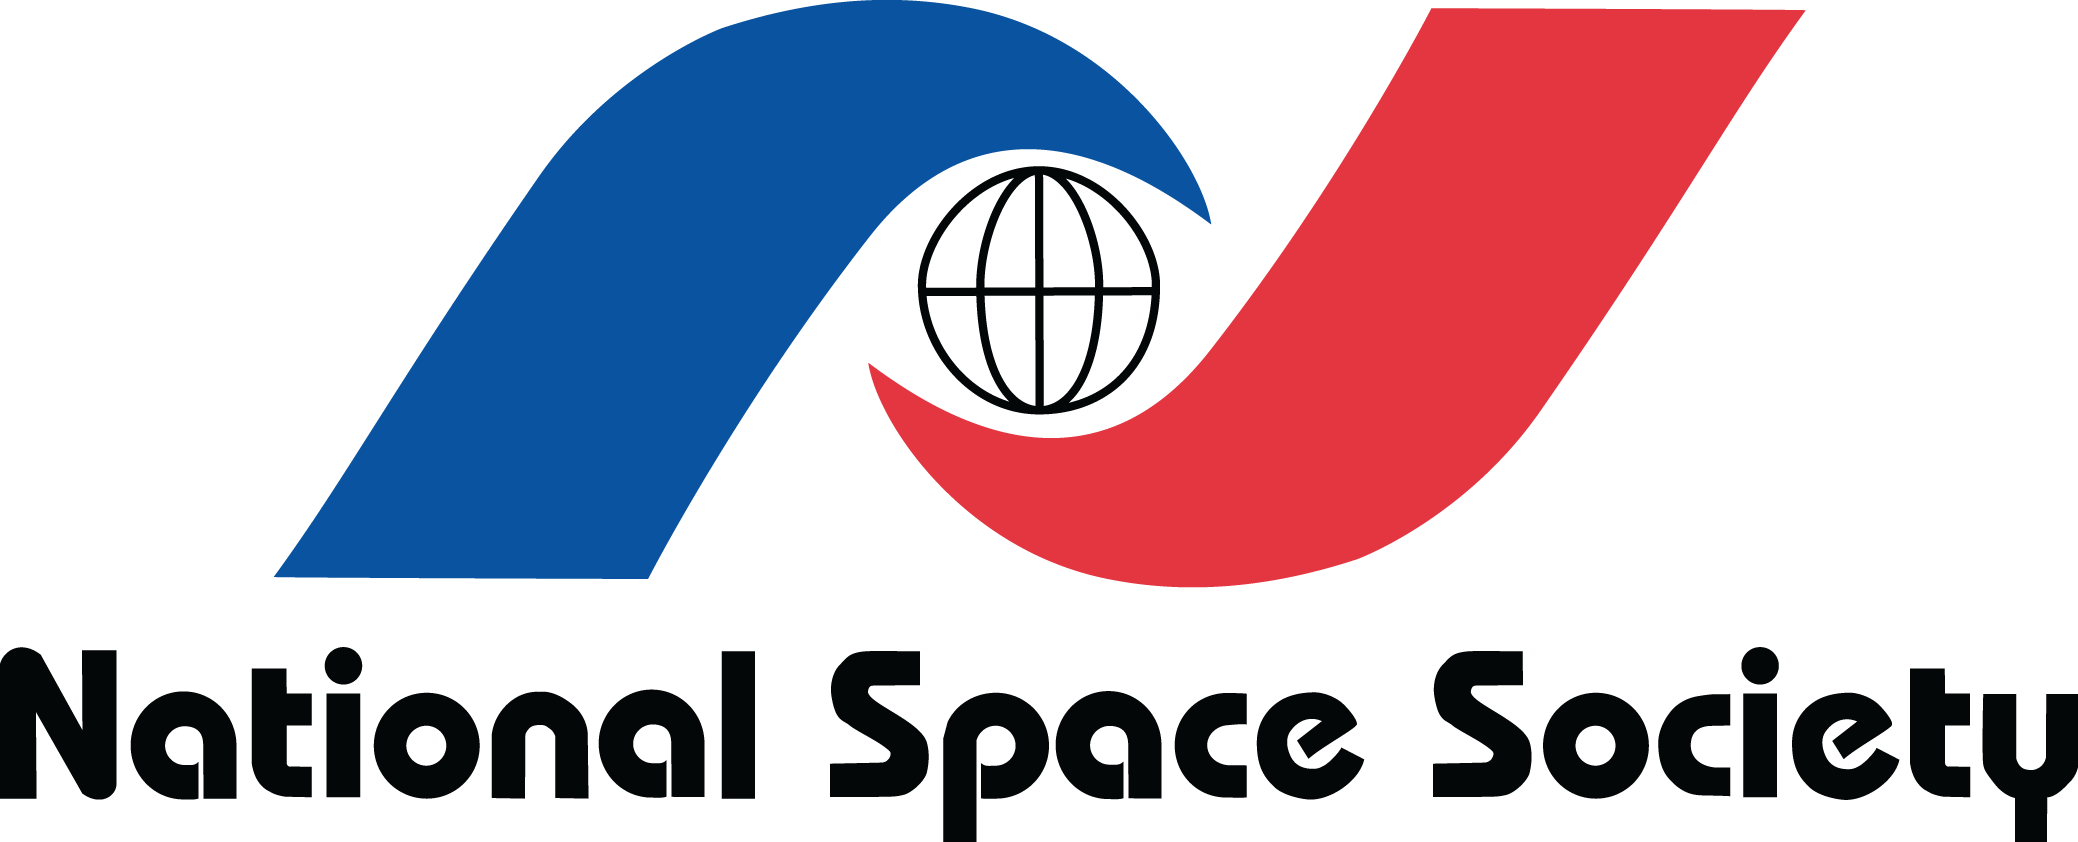 National Space Society|Working to Create a Spacefaring